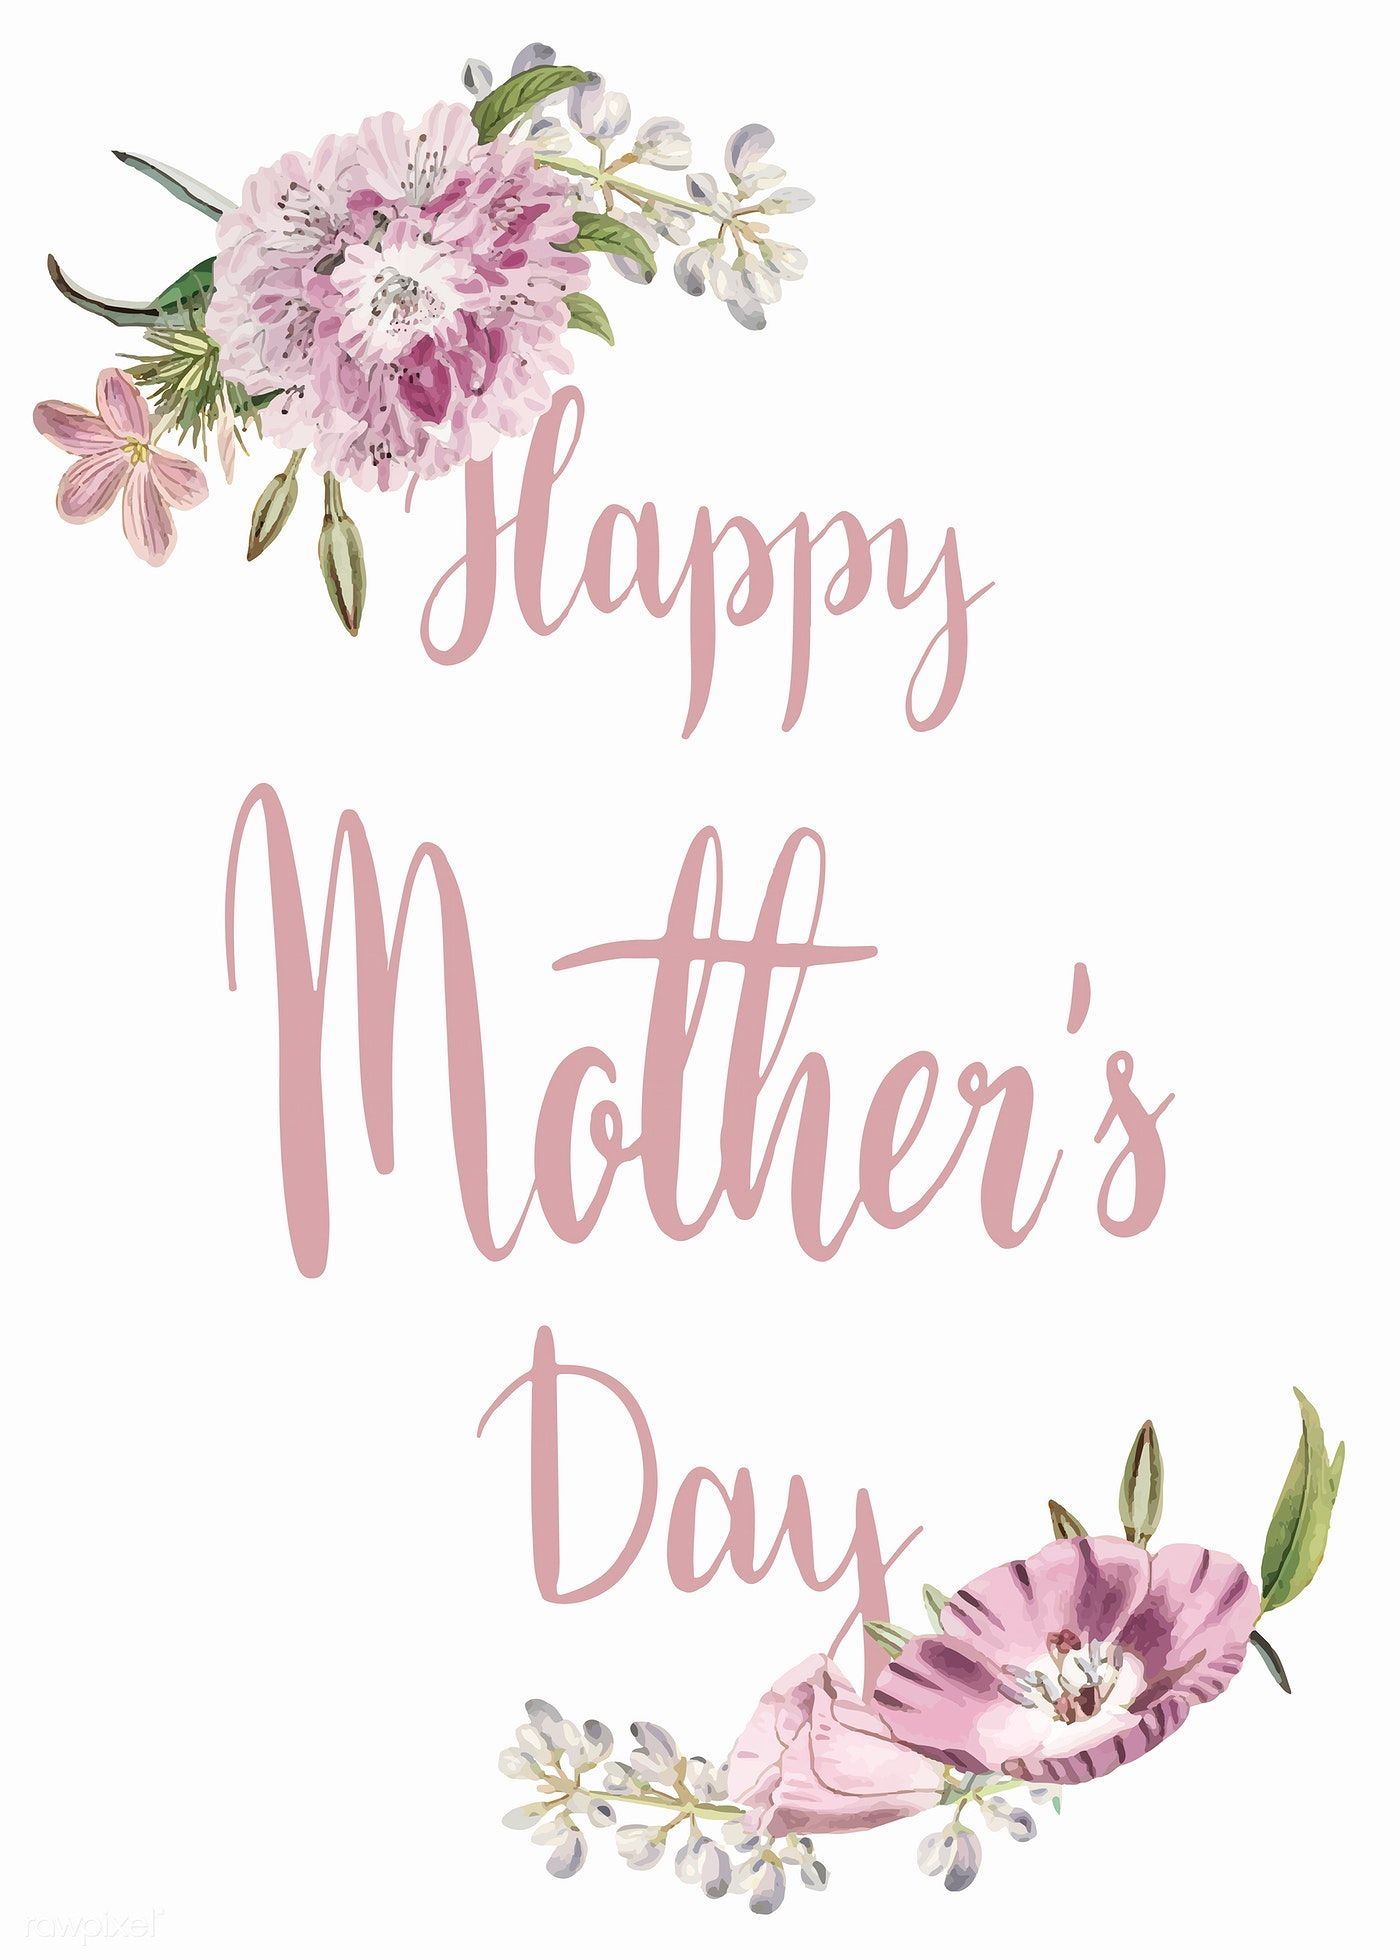 Happy Mother S Day Card Vector Premium Image By Rawpixel Com Sasi Wan Happy Mother S Day Card Happy Mothers Day Images Happy Mothers Day